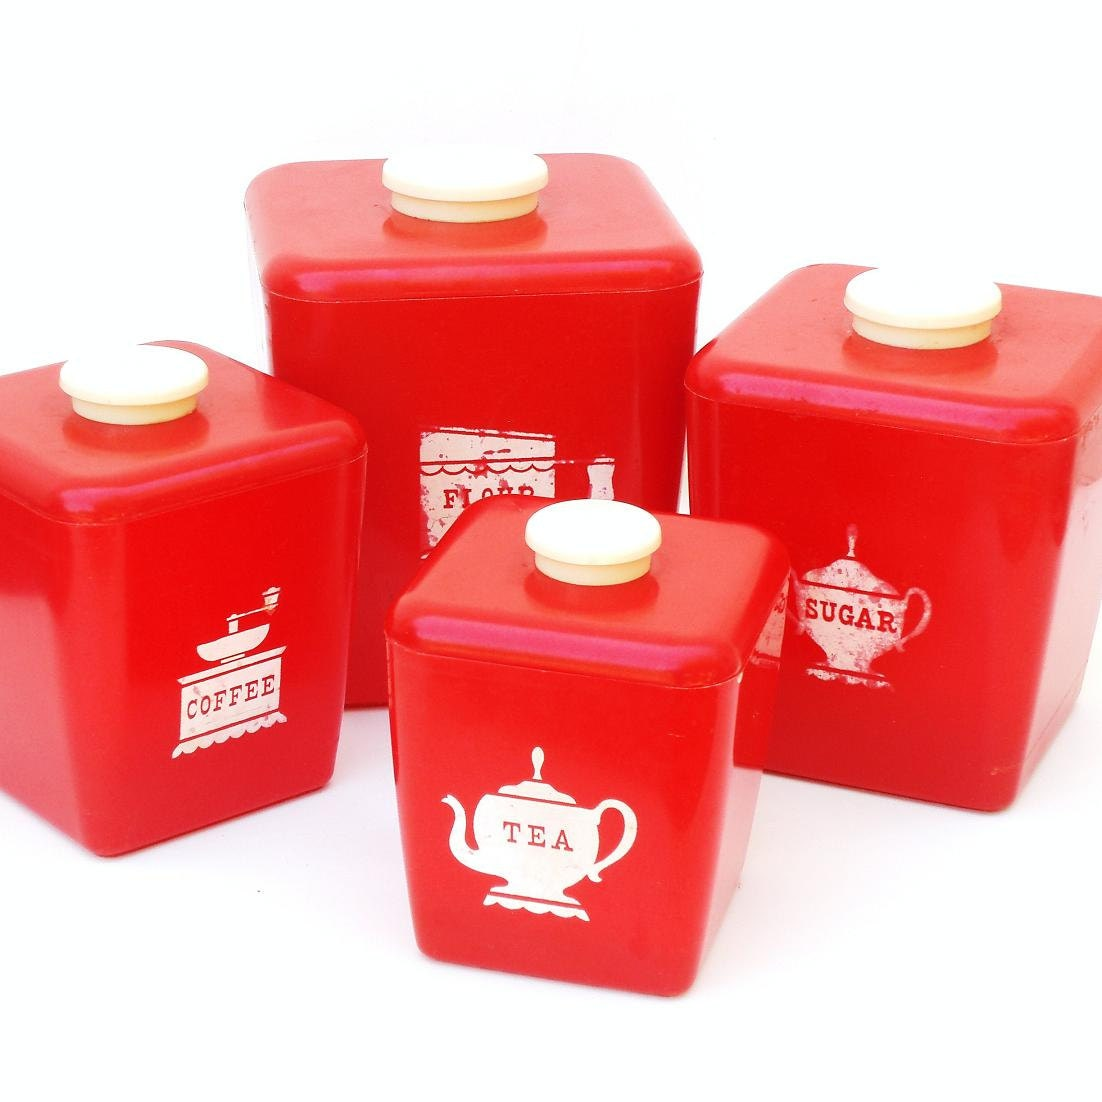 Metal Kitchen Canisters Vintage Red Canisters 50s Kitchen Canister Set Tea Coffee